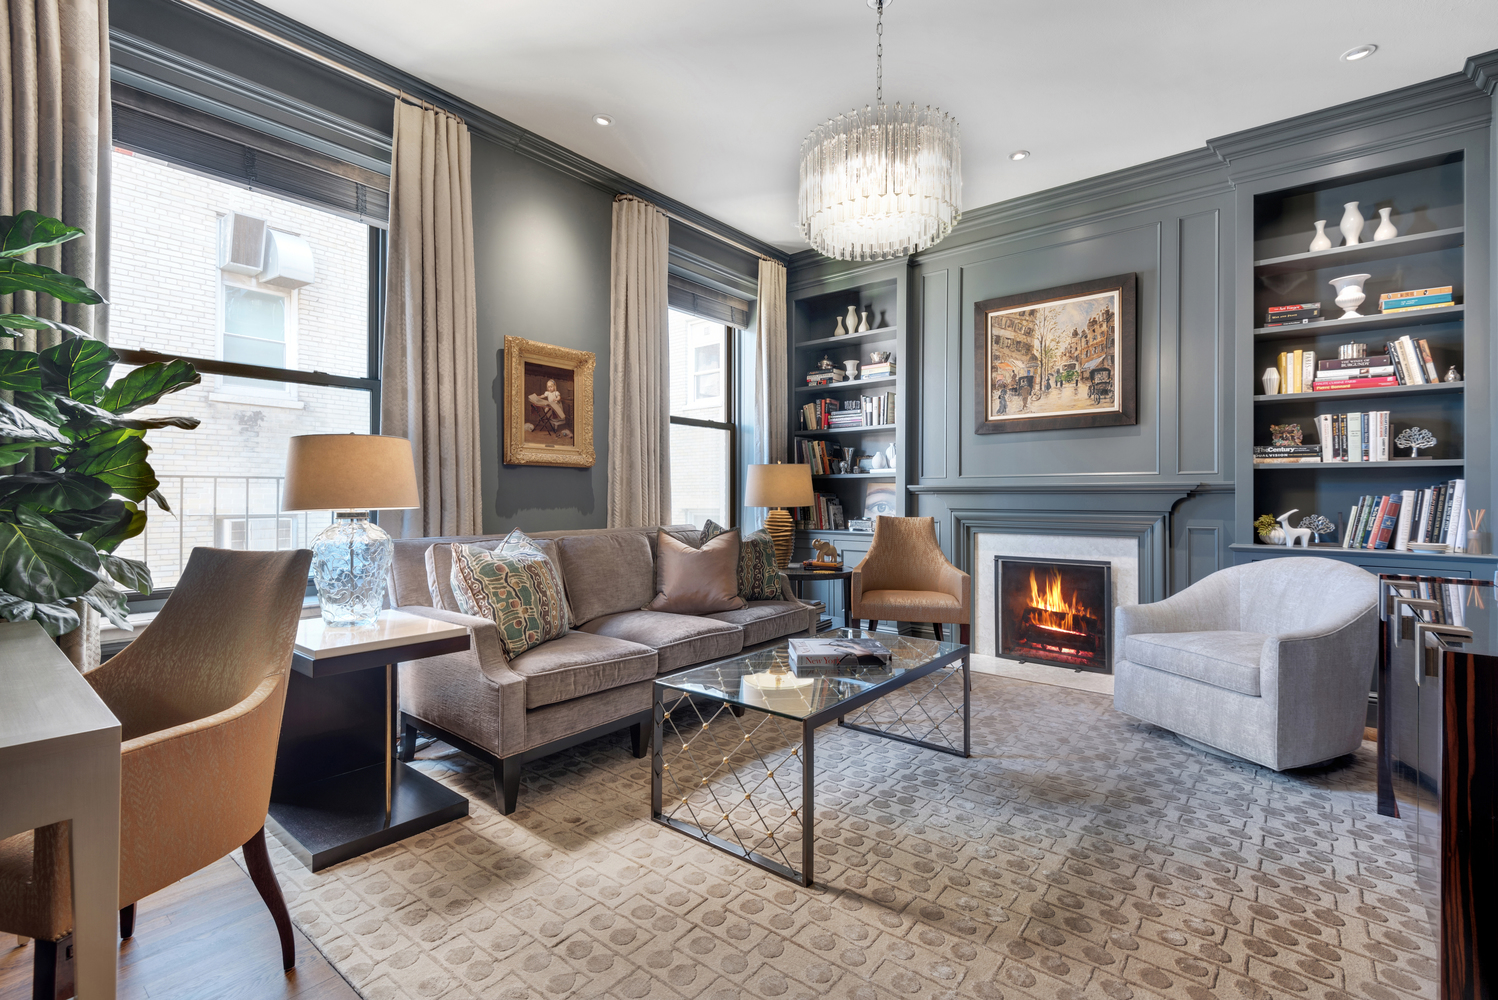 55 East 65th Street #7B - 1 BED | 1 BATH | UPPER EAST SIDE